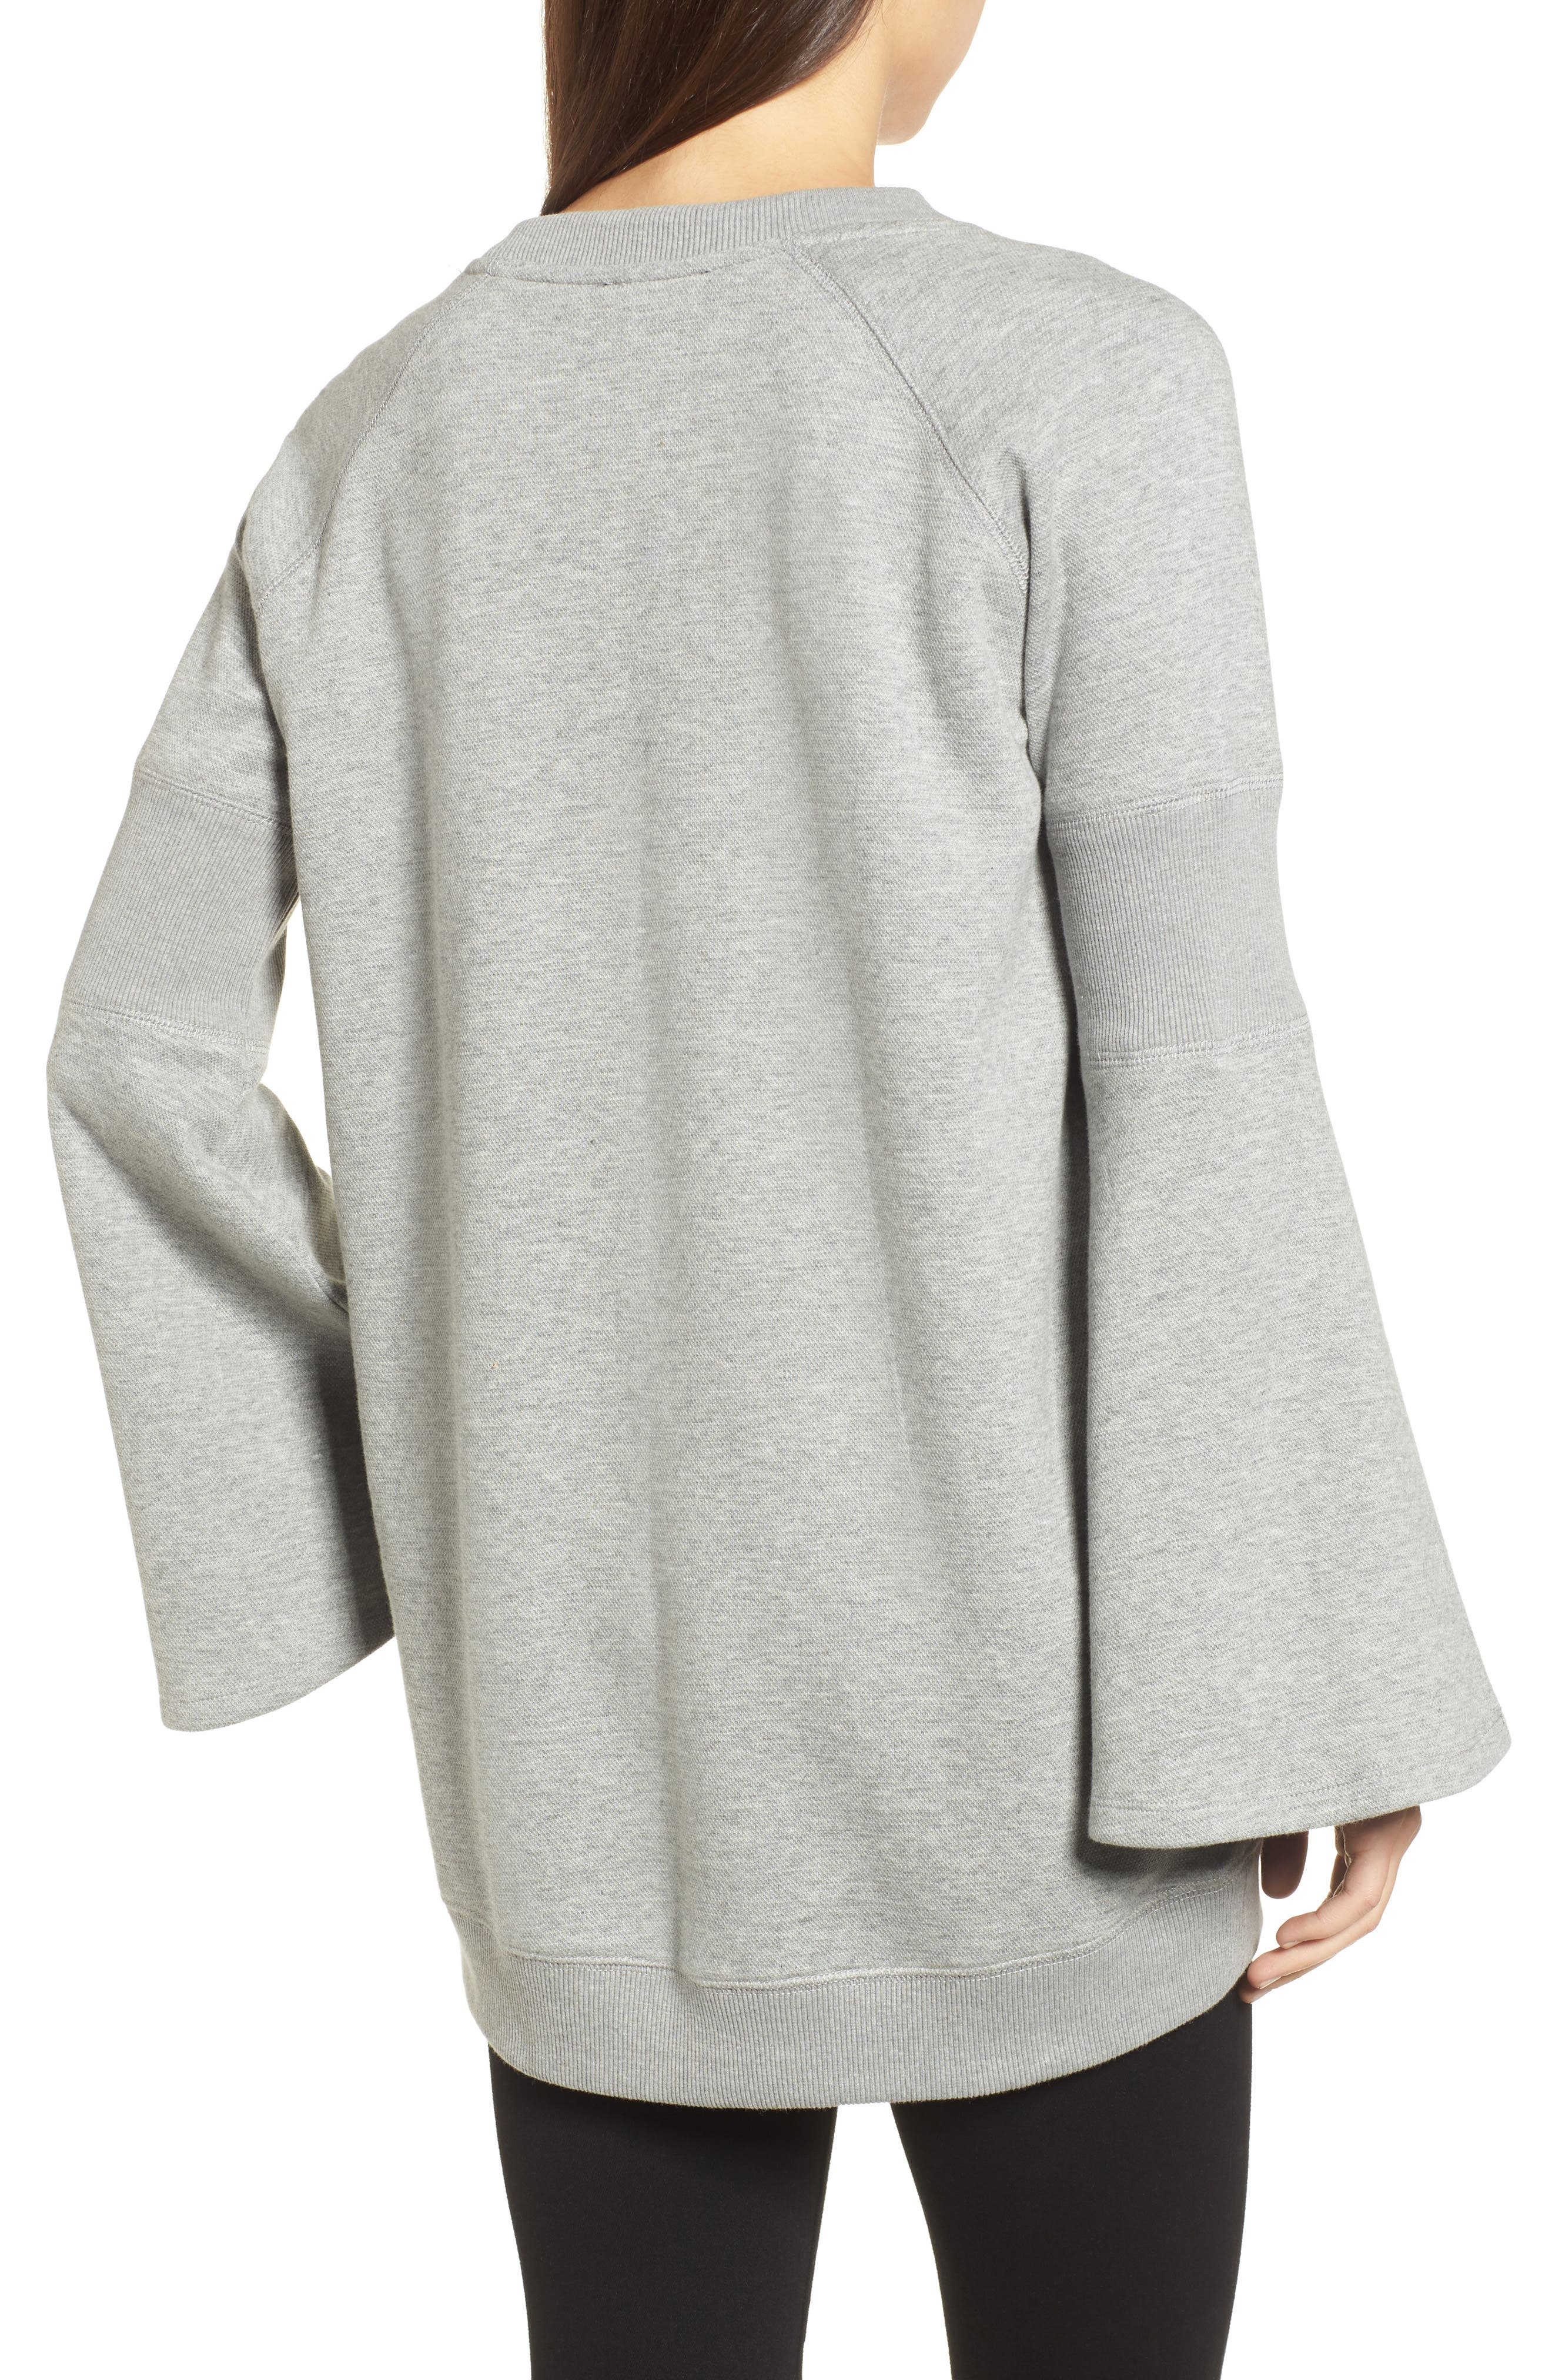 Bell Sleeve Ribbed Sweatshirt,                             Alternate thumbnail 2, color,                             Heather Gray Bros